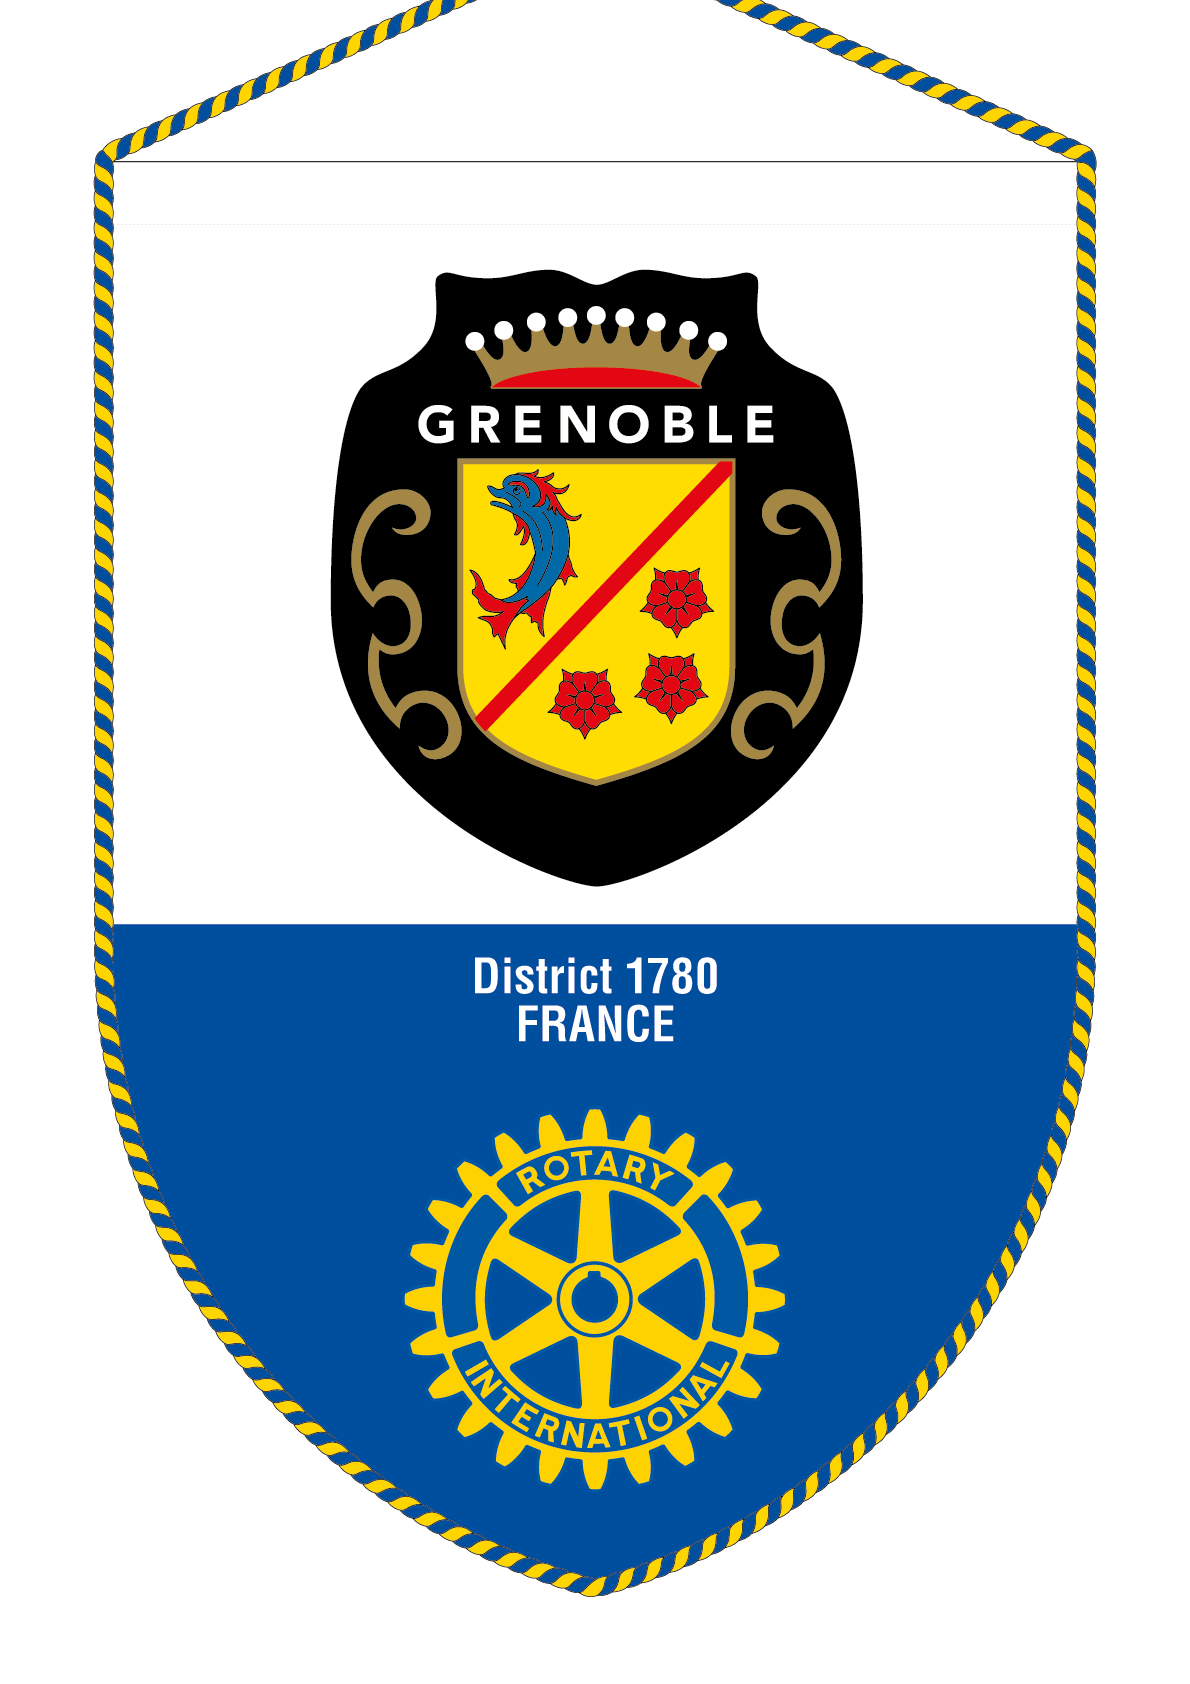 FANION ROTARY CLUB GRENOBLE